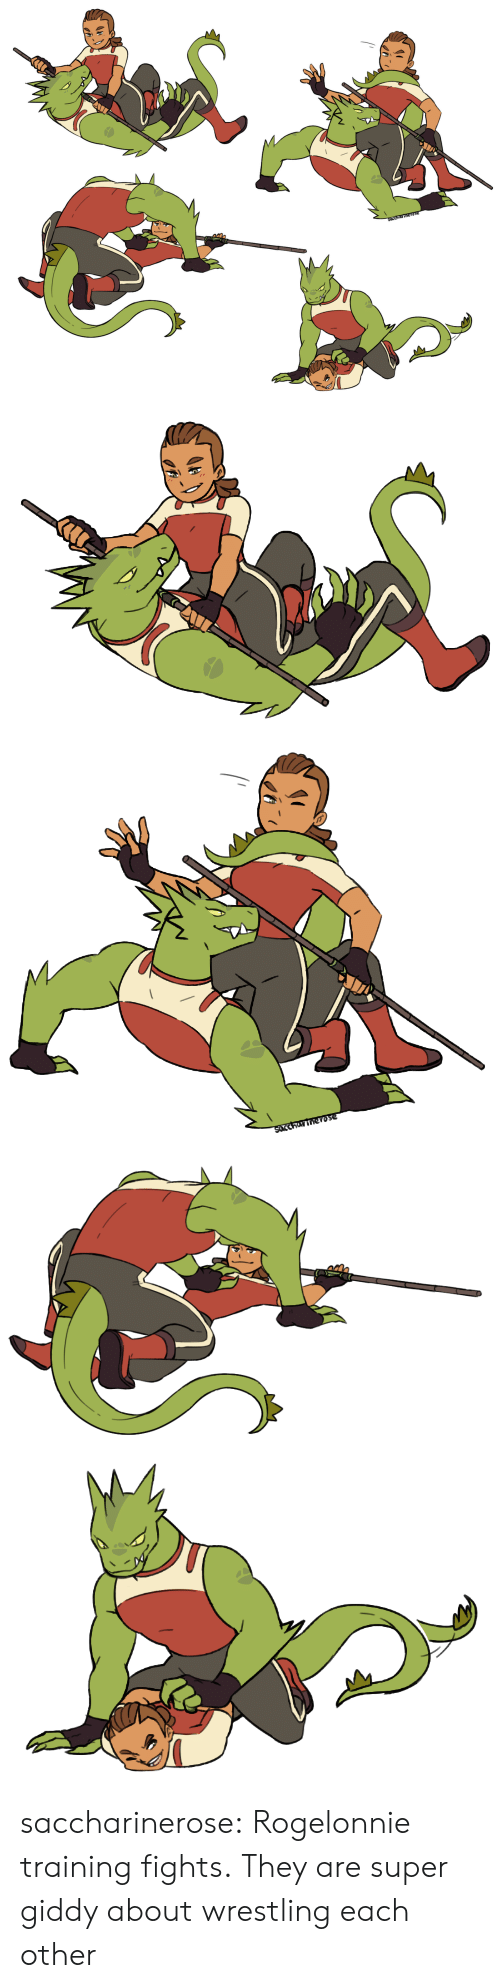 Wrestling: SArCharinerose   SOccharinerose saccharinerose:  Rogelonnie training fights.They are super giddy about wrestling each other